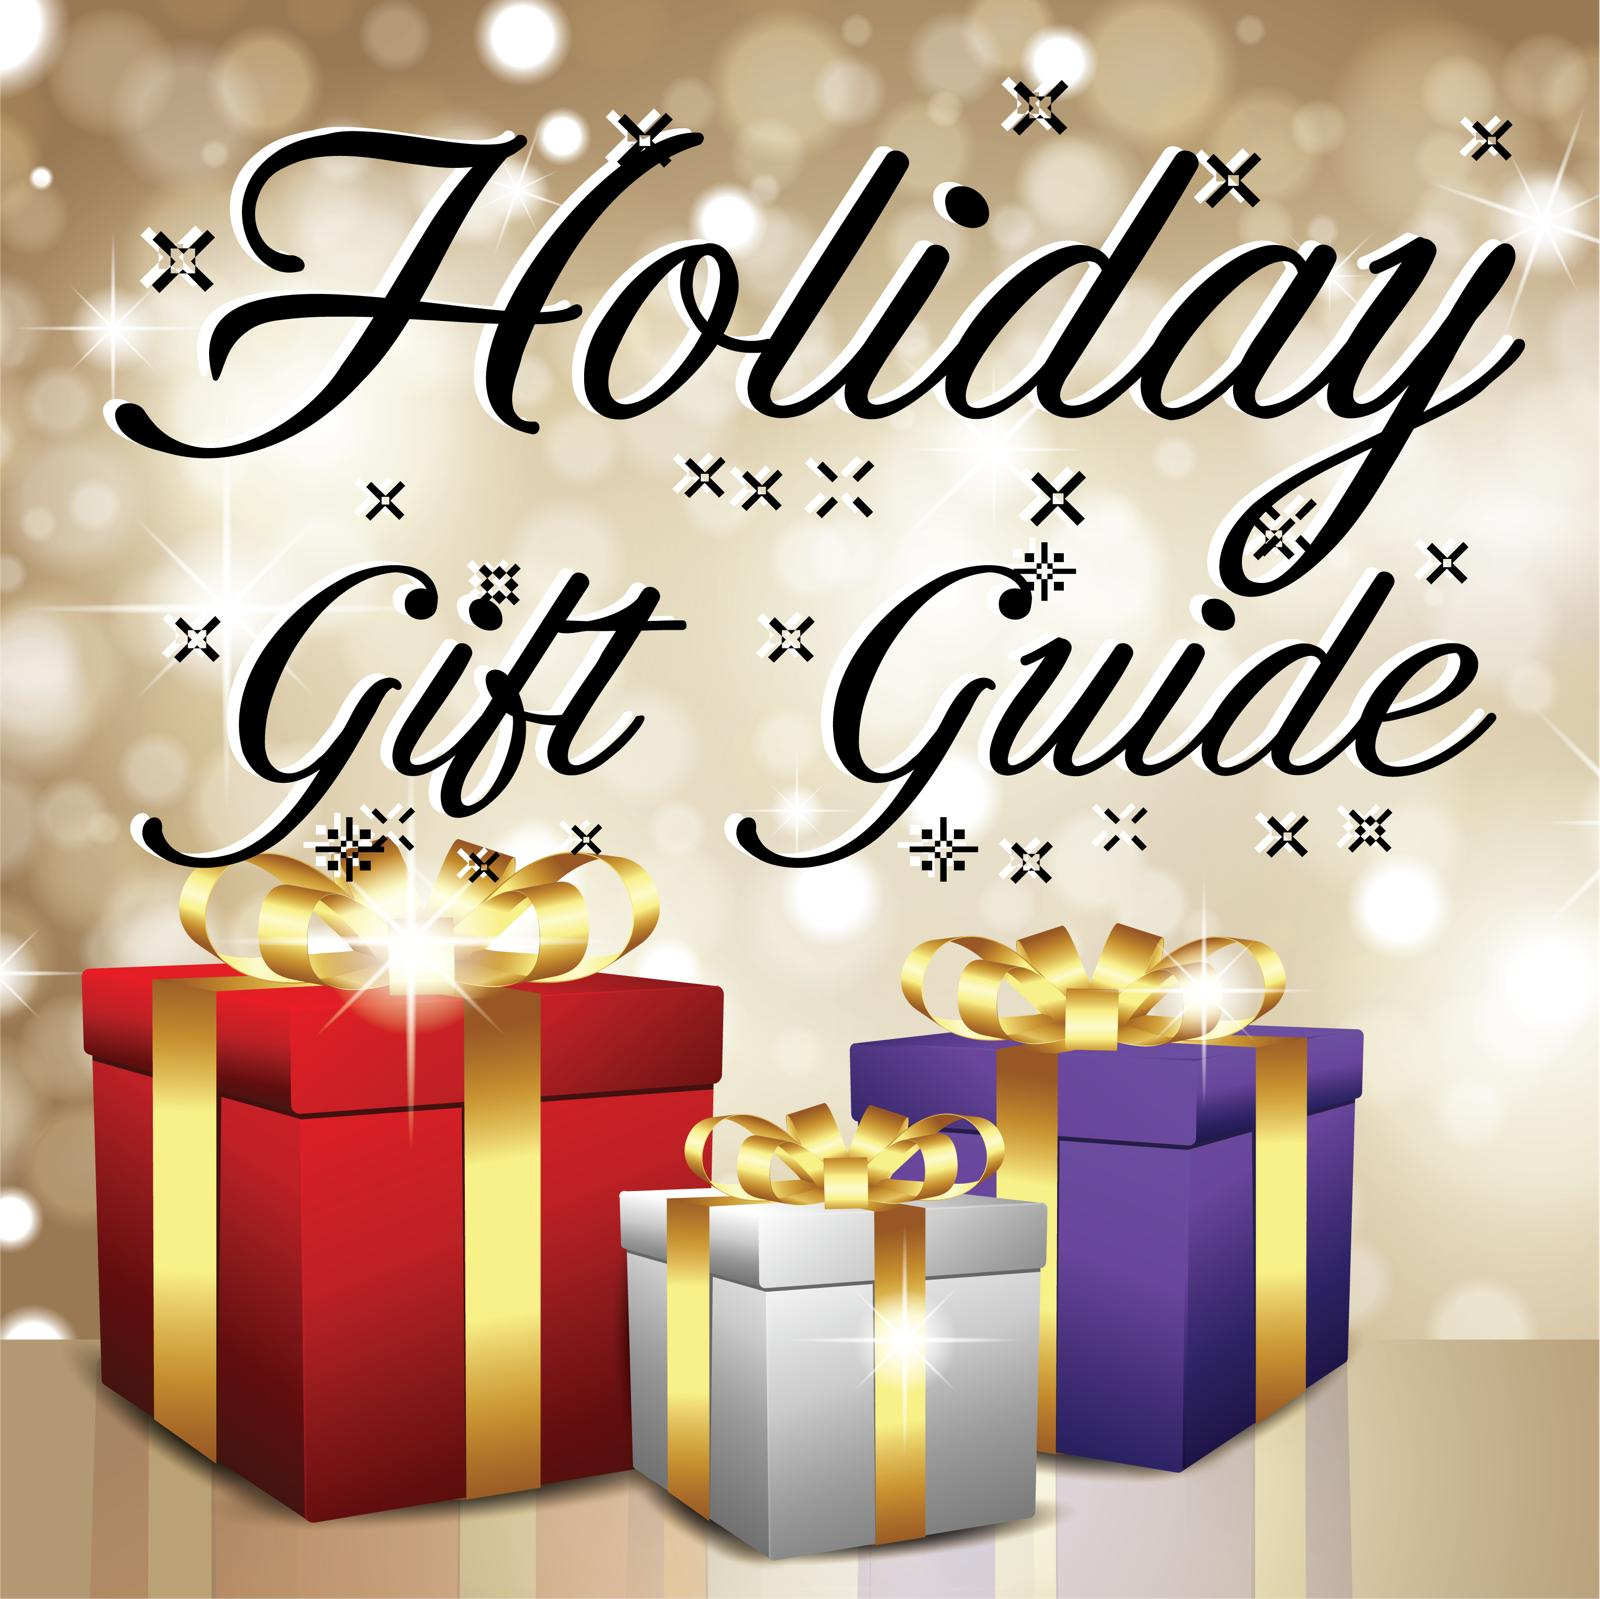 Holiday Gift Guide and round-up article illustration by Gabrielle Archuleta for 360 MAGAZINE